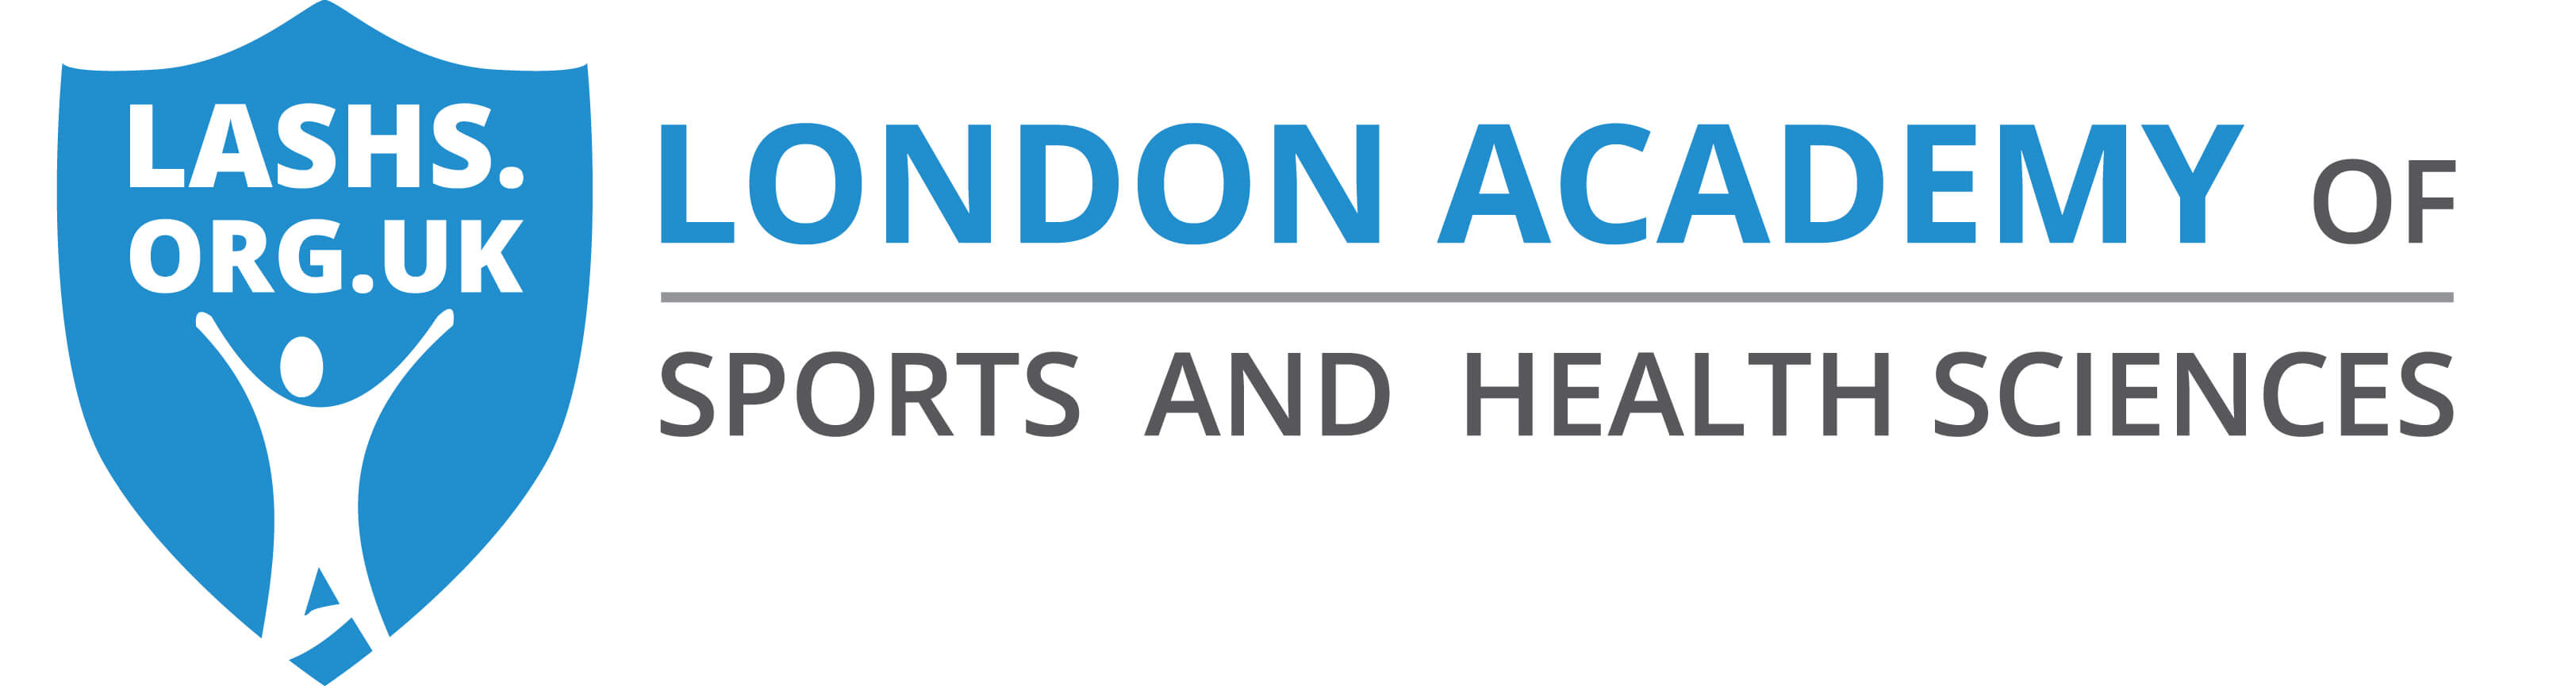 London Academy of Sports and Health Sciences